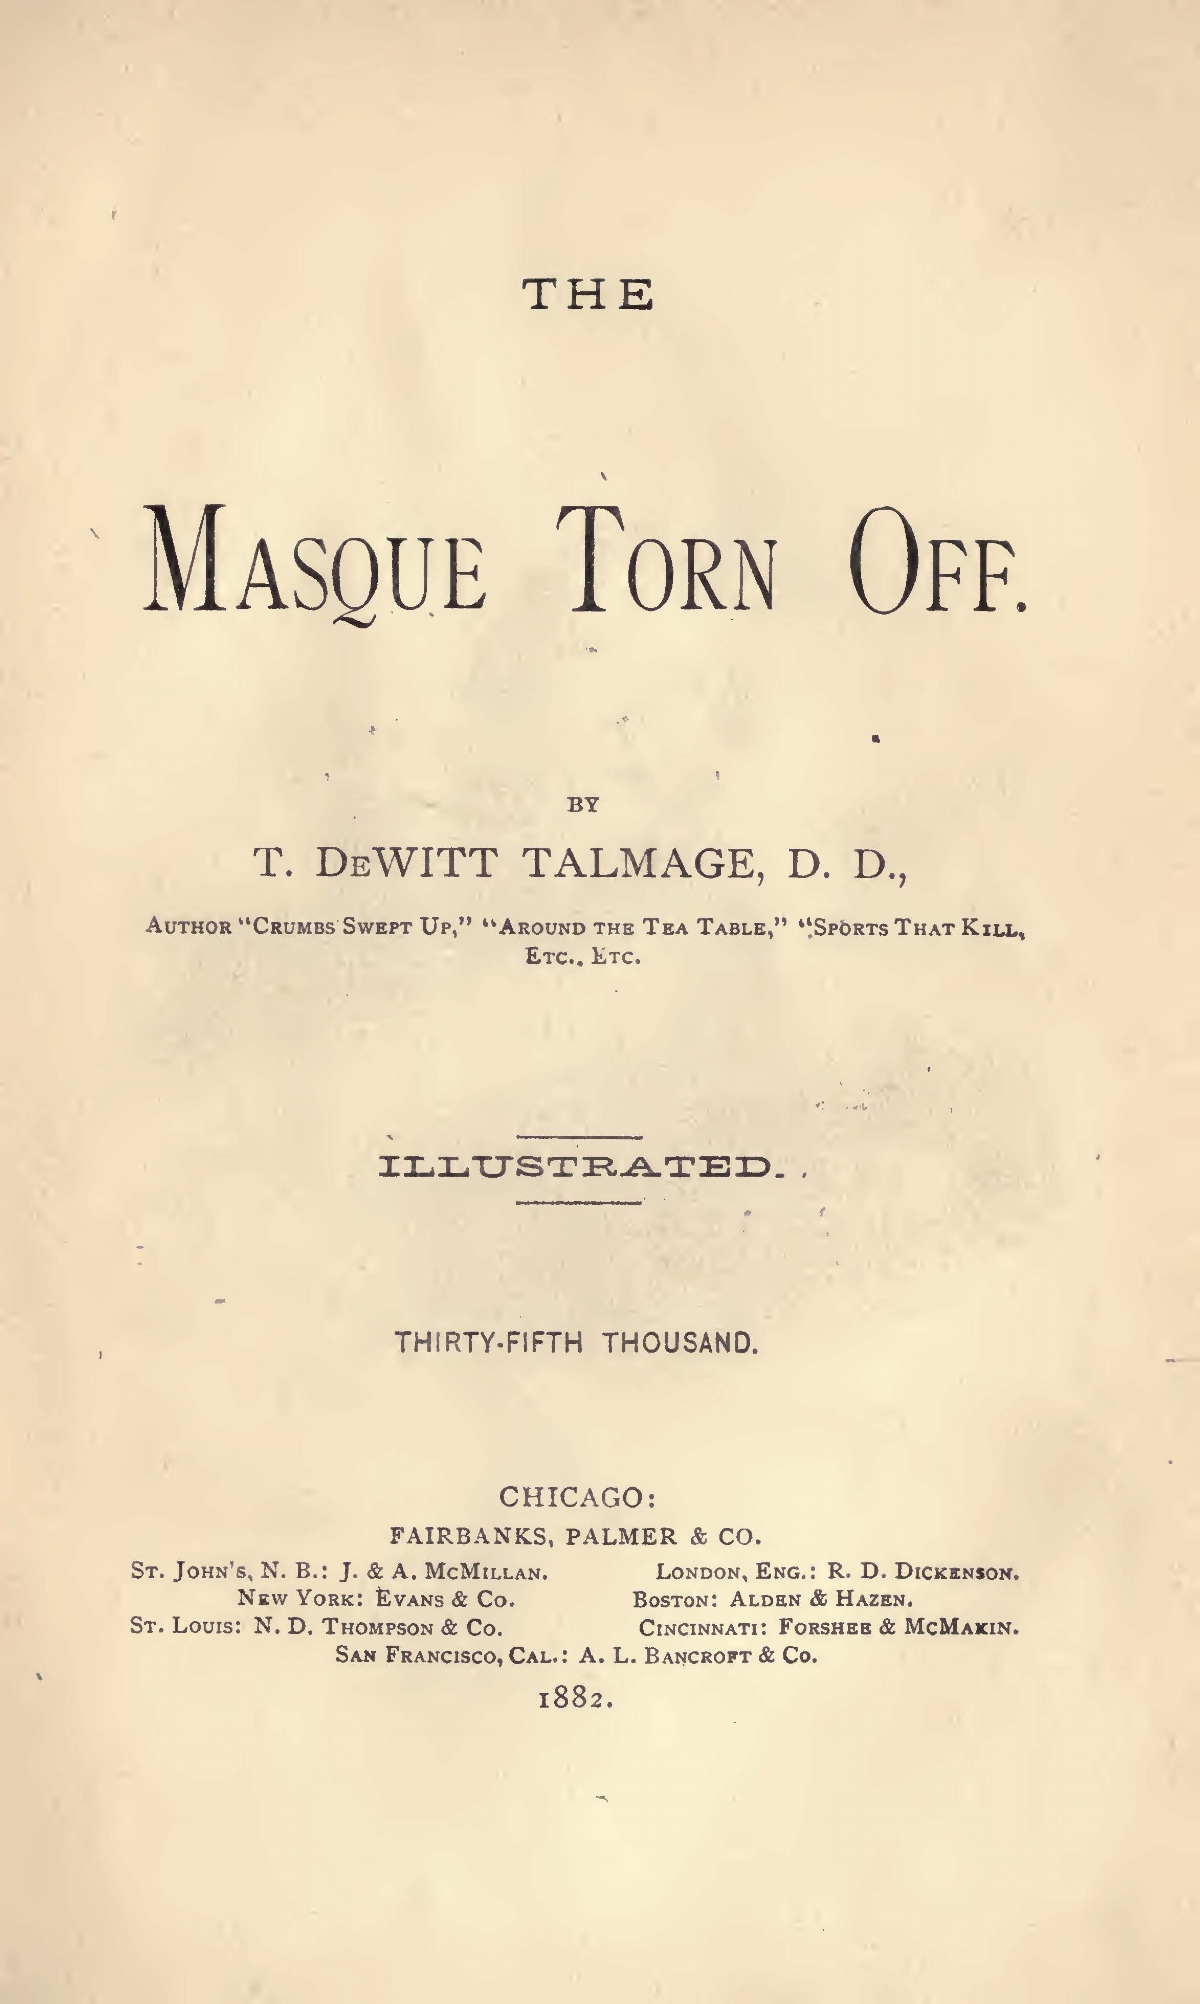 Talmage, Thomas De Witt, The Masque Torn Off Title Page.jpg